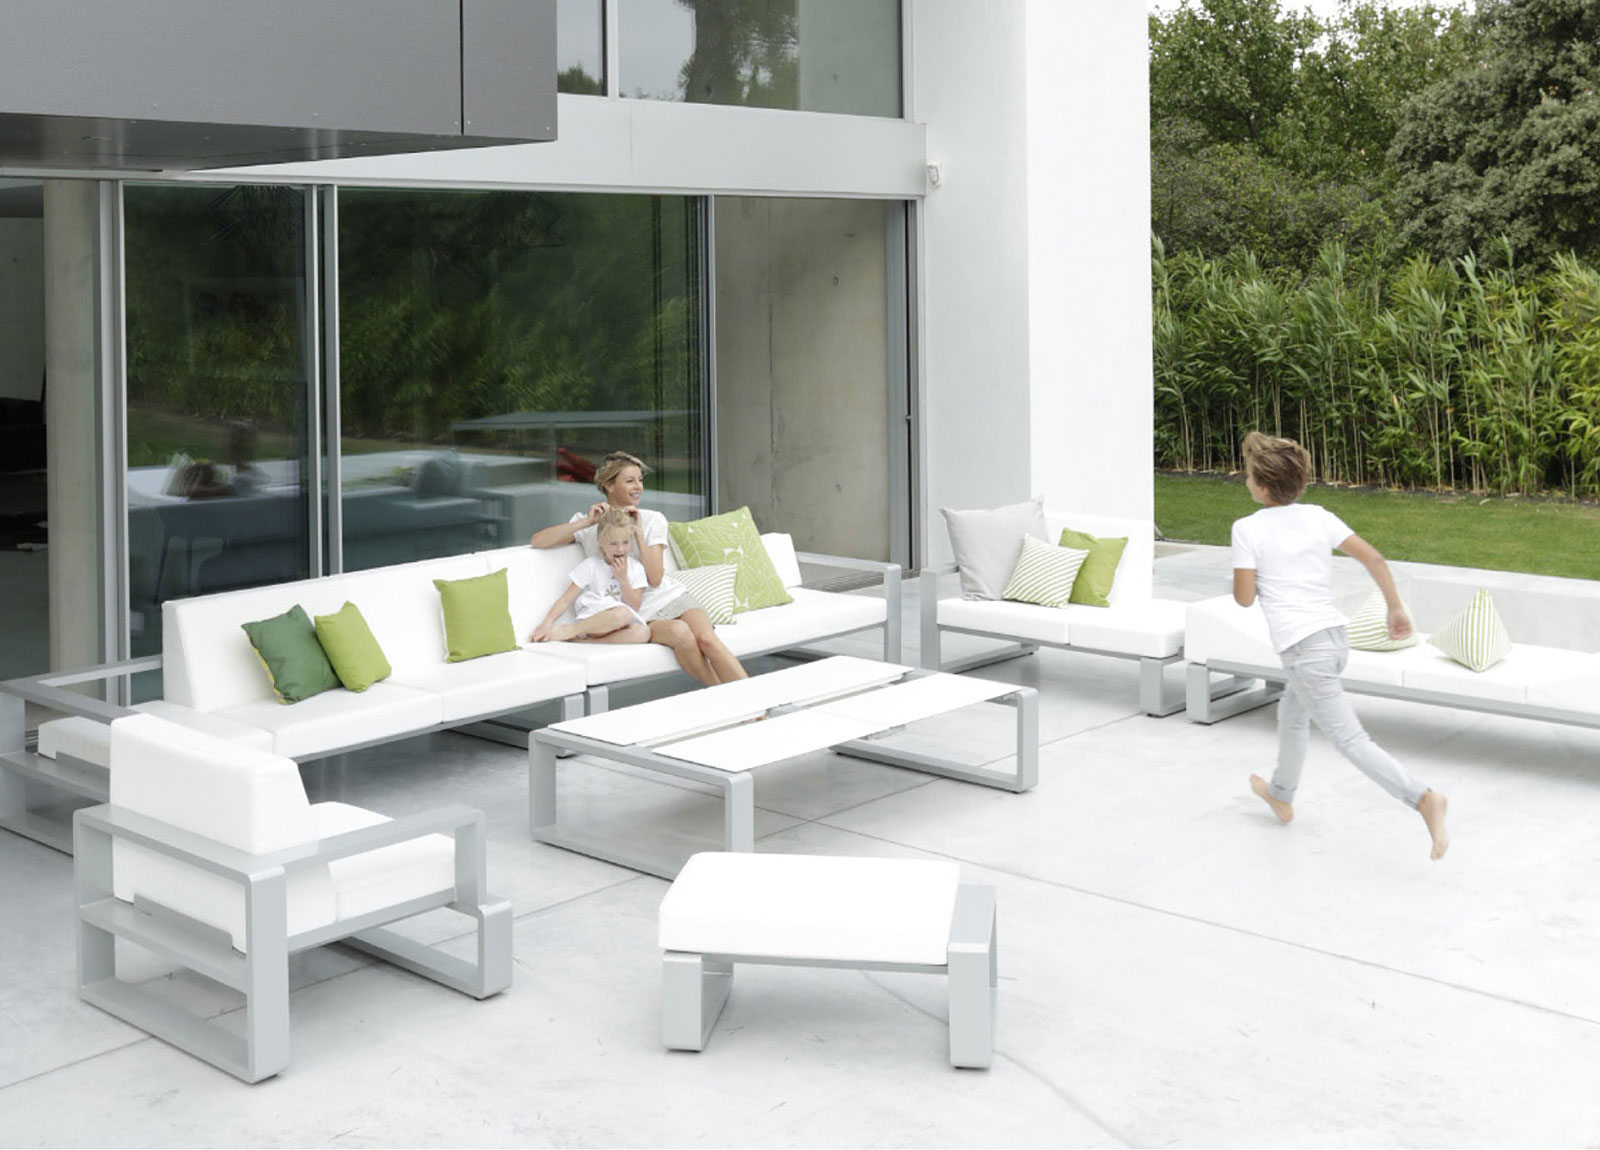 Contemporary Outdoor Patio Furniture Outdoor Furniture Patio Furniture Modern Furniture Patio